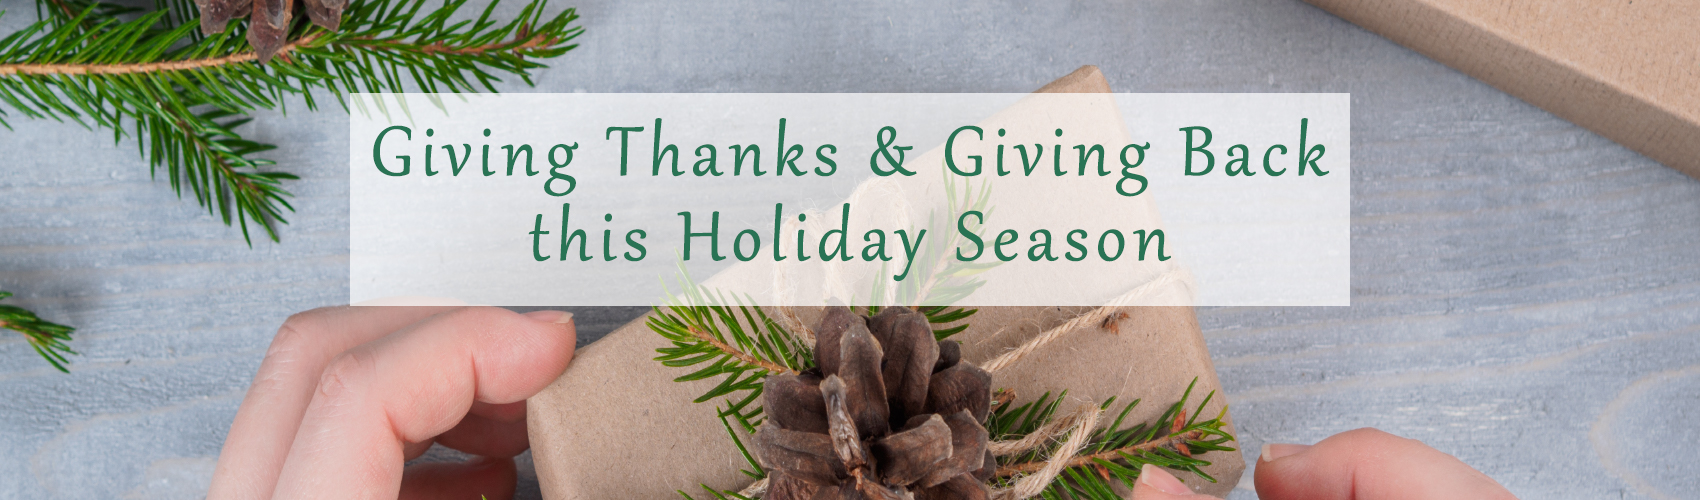 Complete Landscaping Service is Giving Thanks and Giving Back this Holiday Season